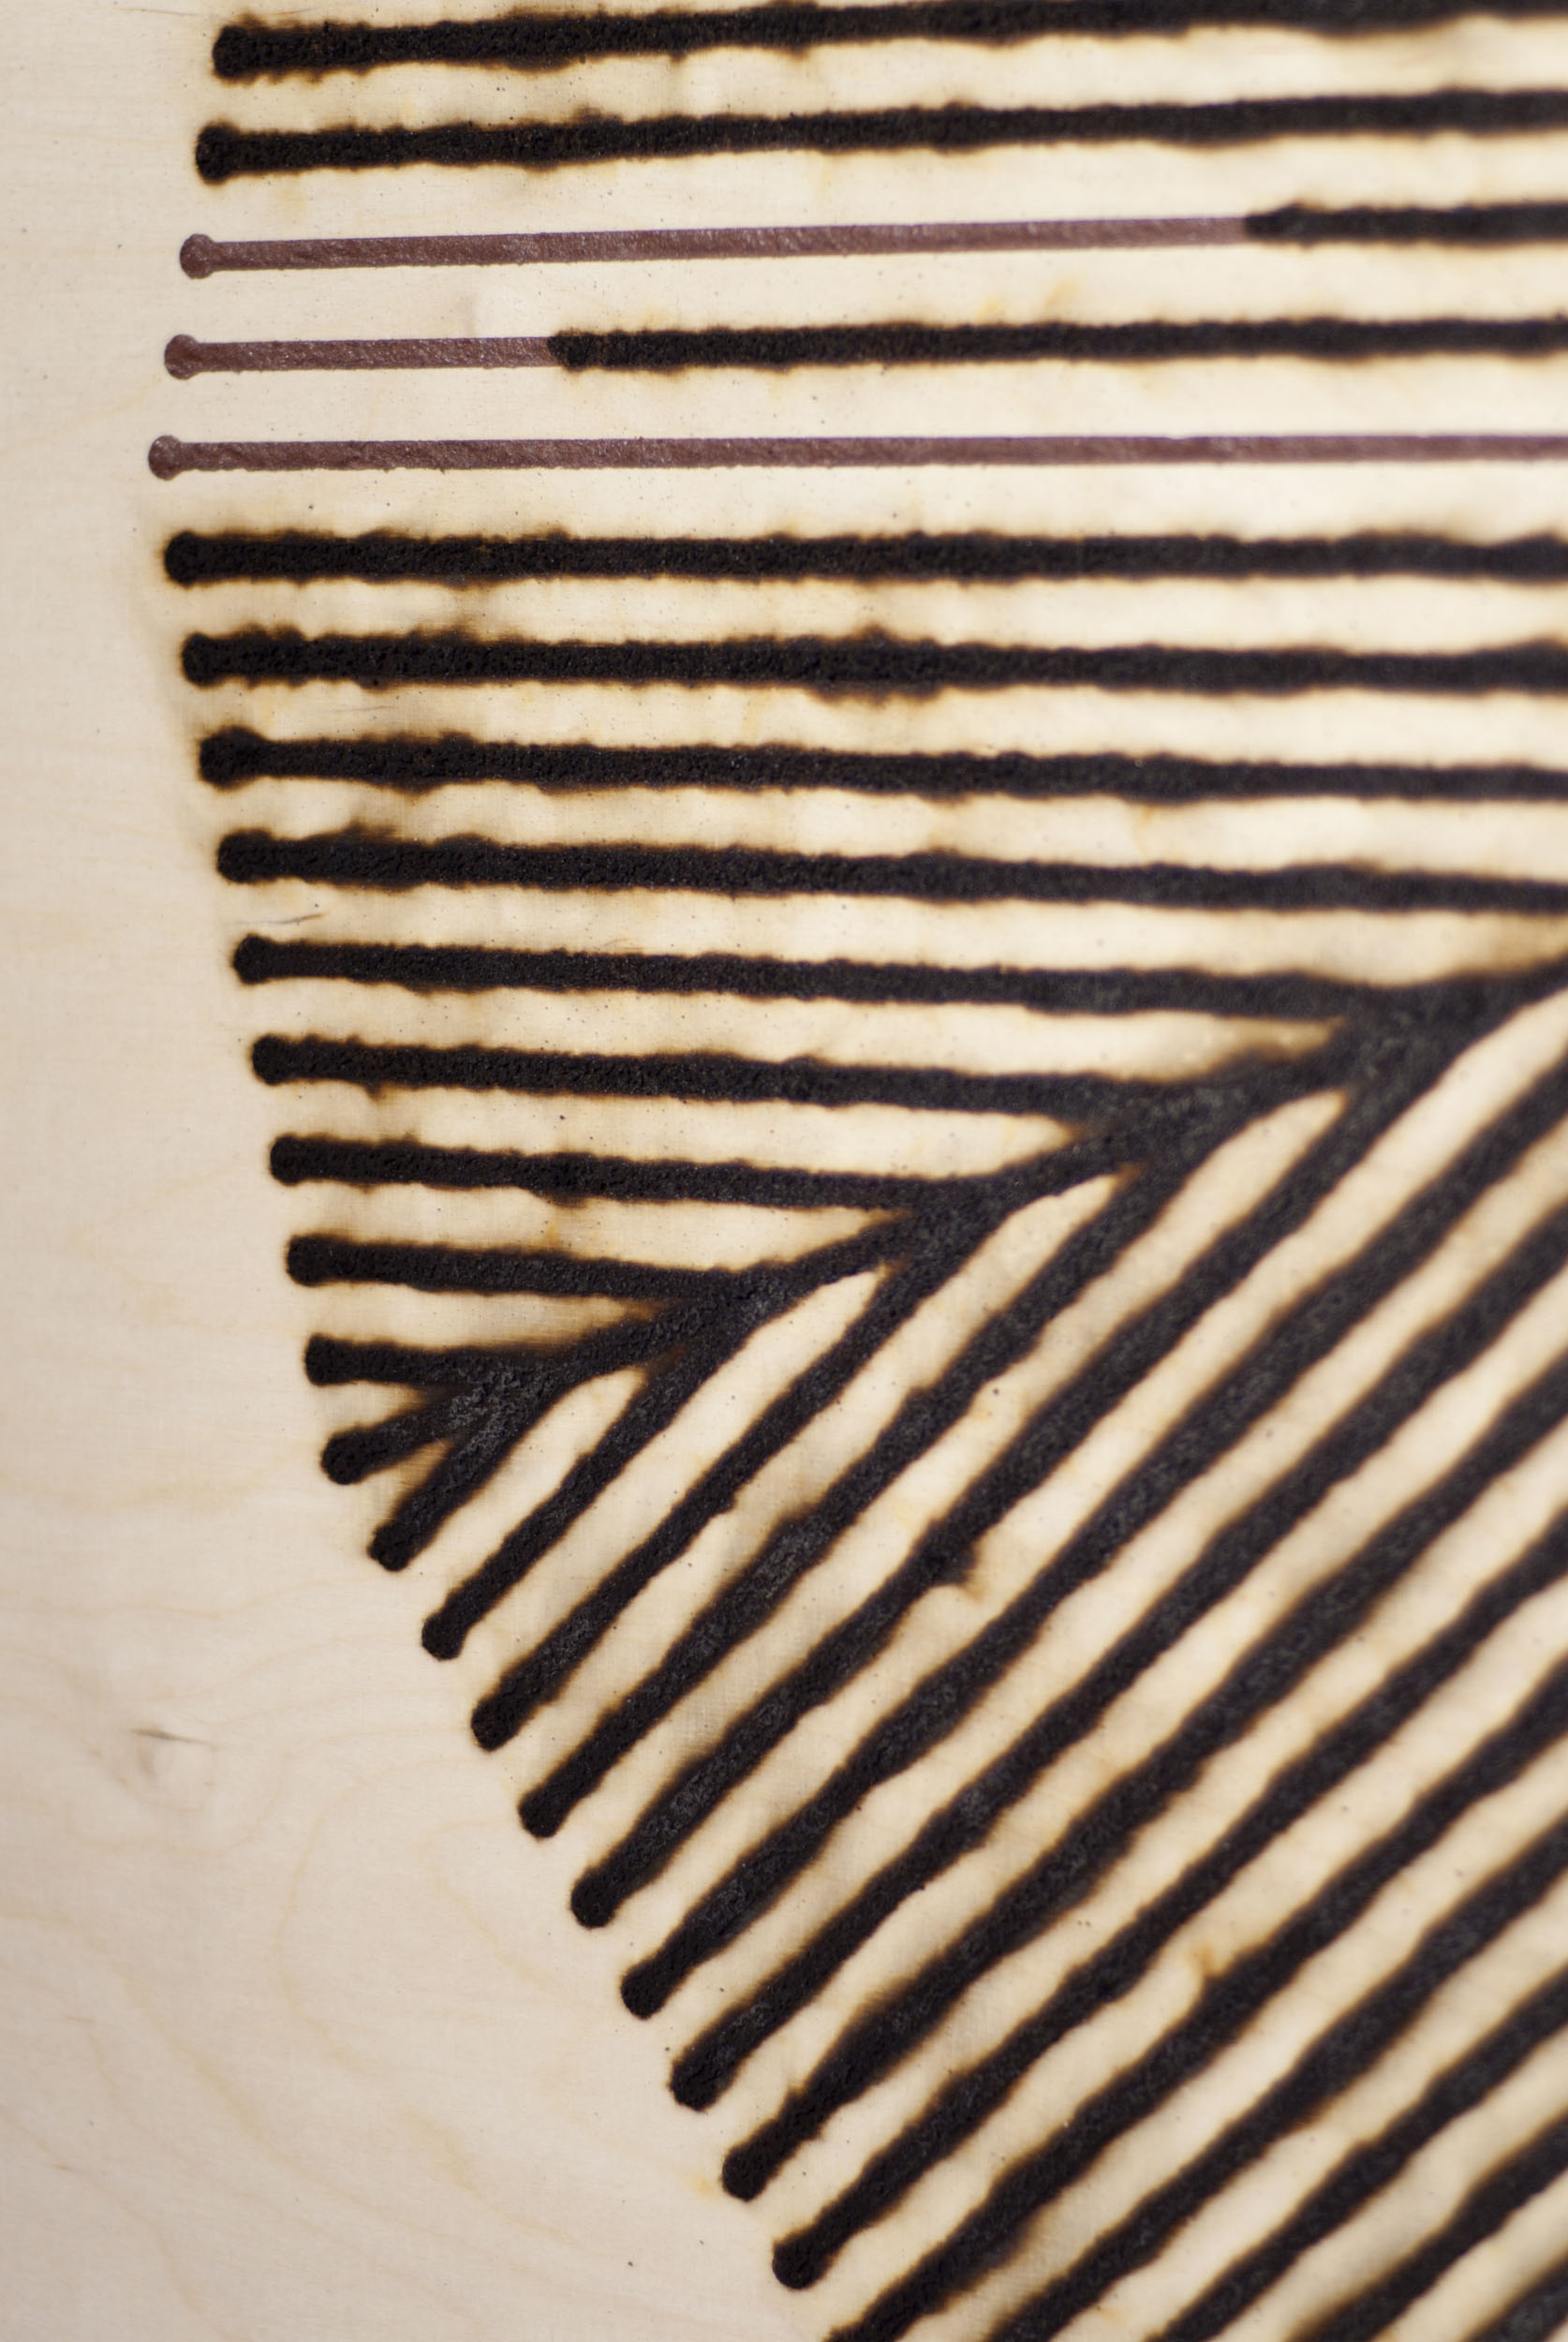 A detail of Fire Drawings showing burnt pathways